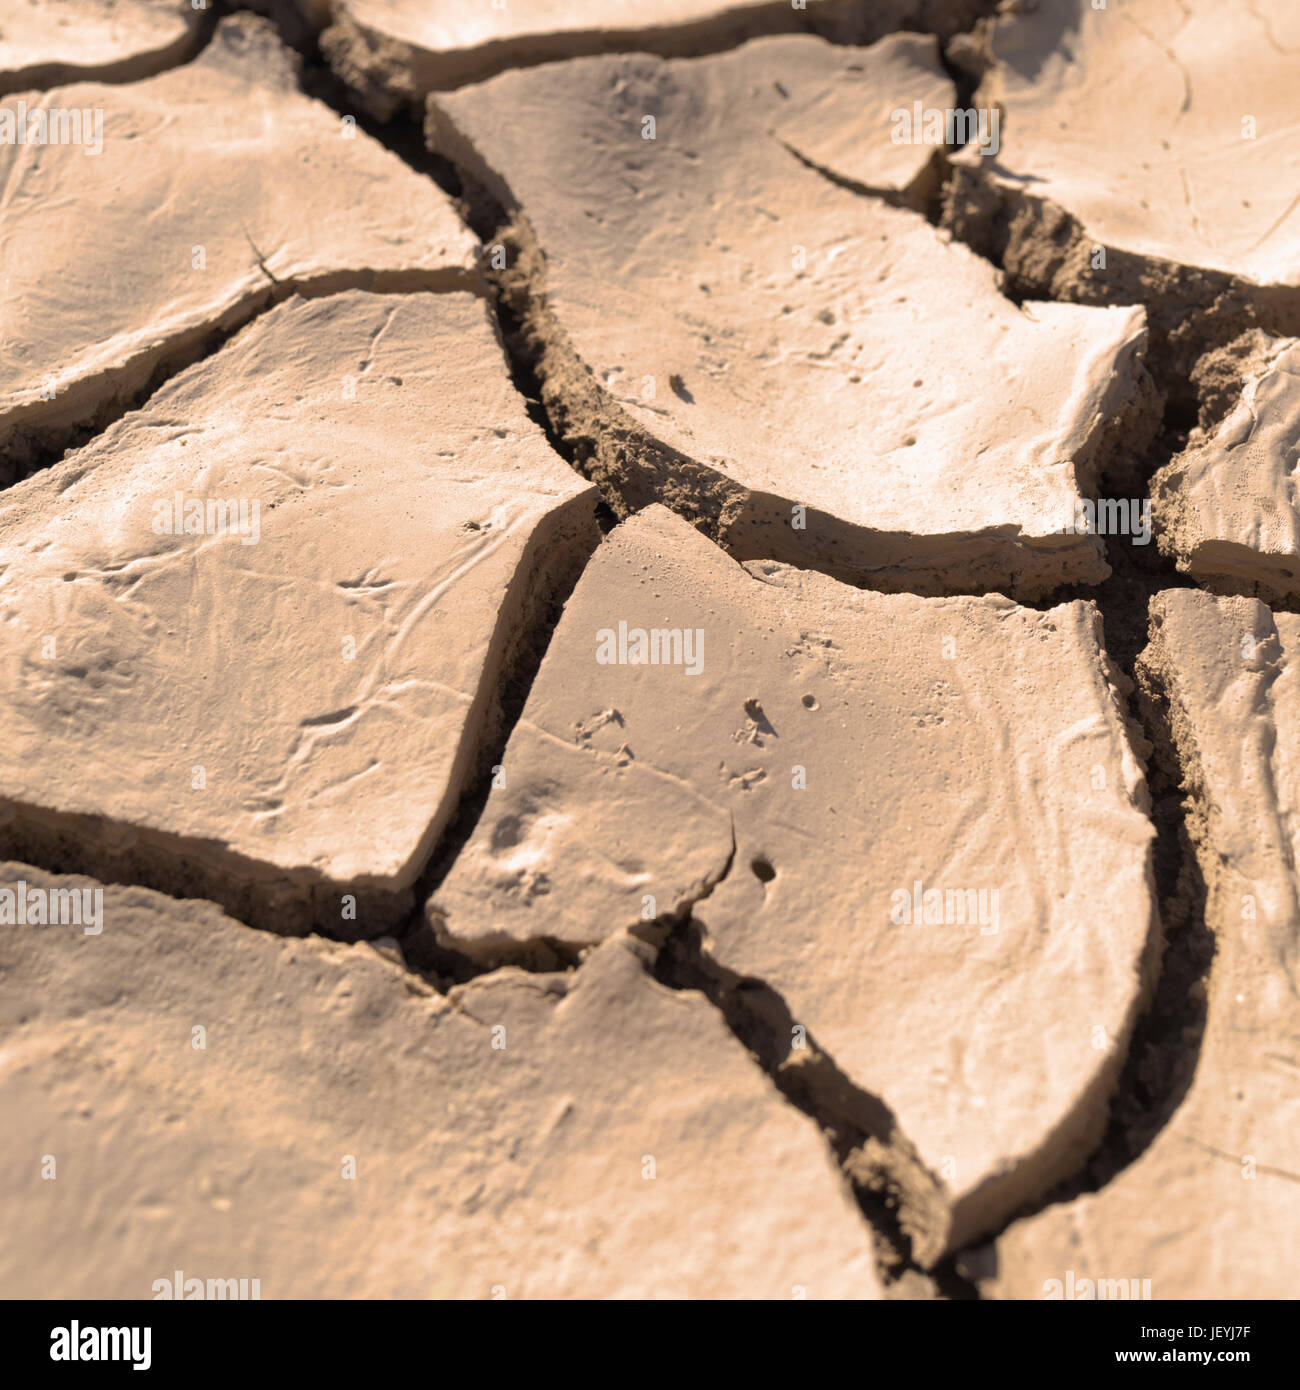 Close up of cracked, dried earth creating an abstract pattern. - Stock Image